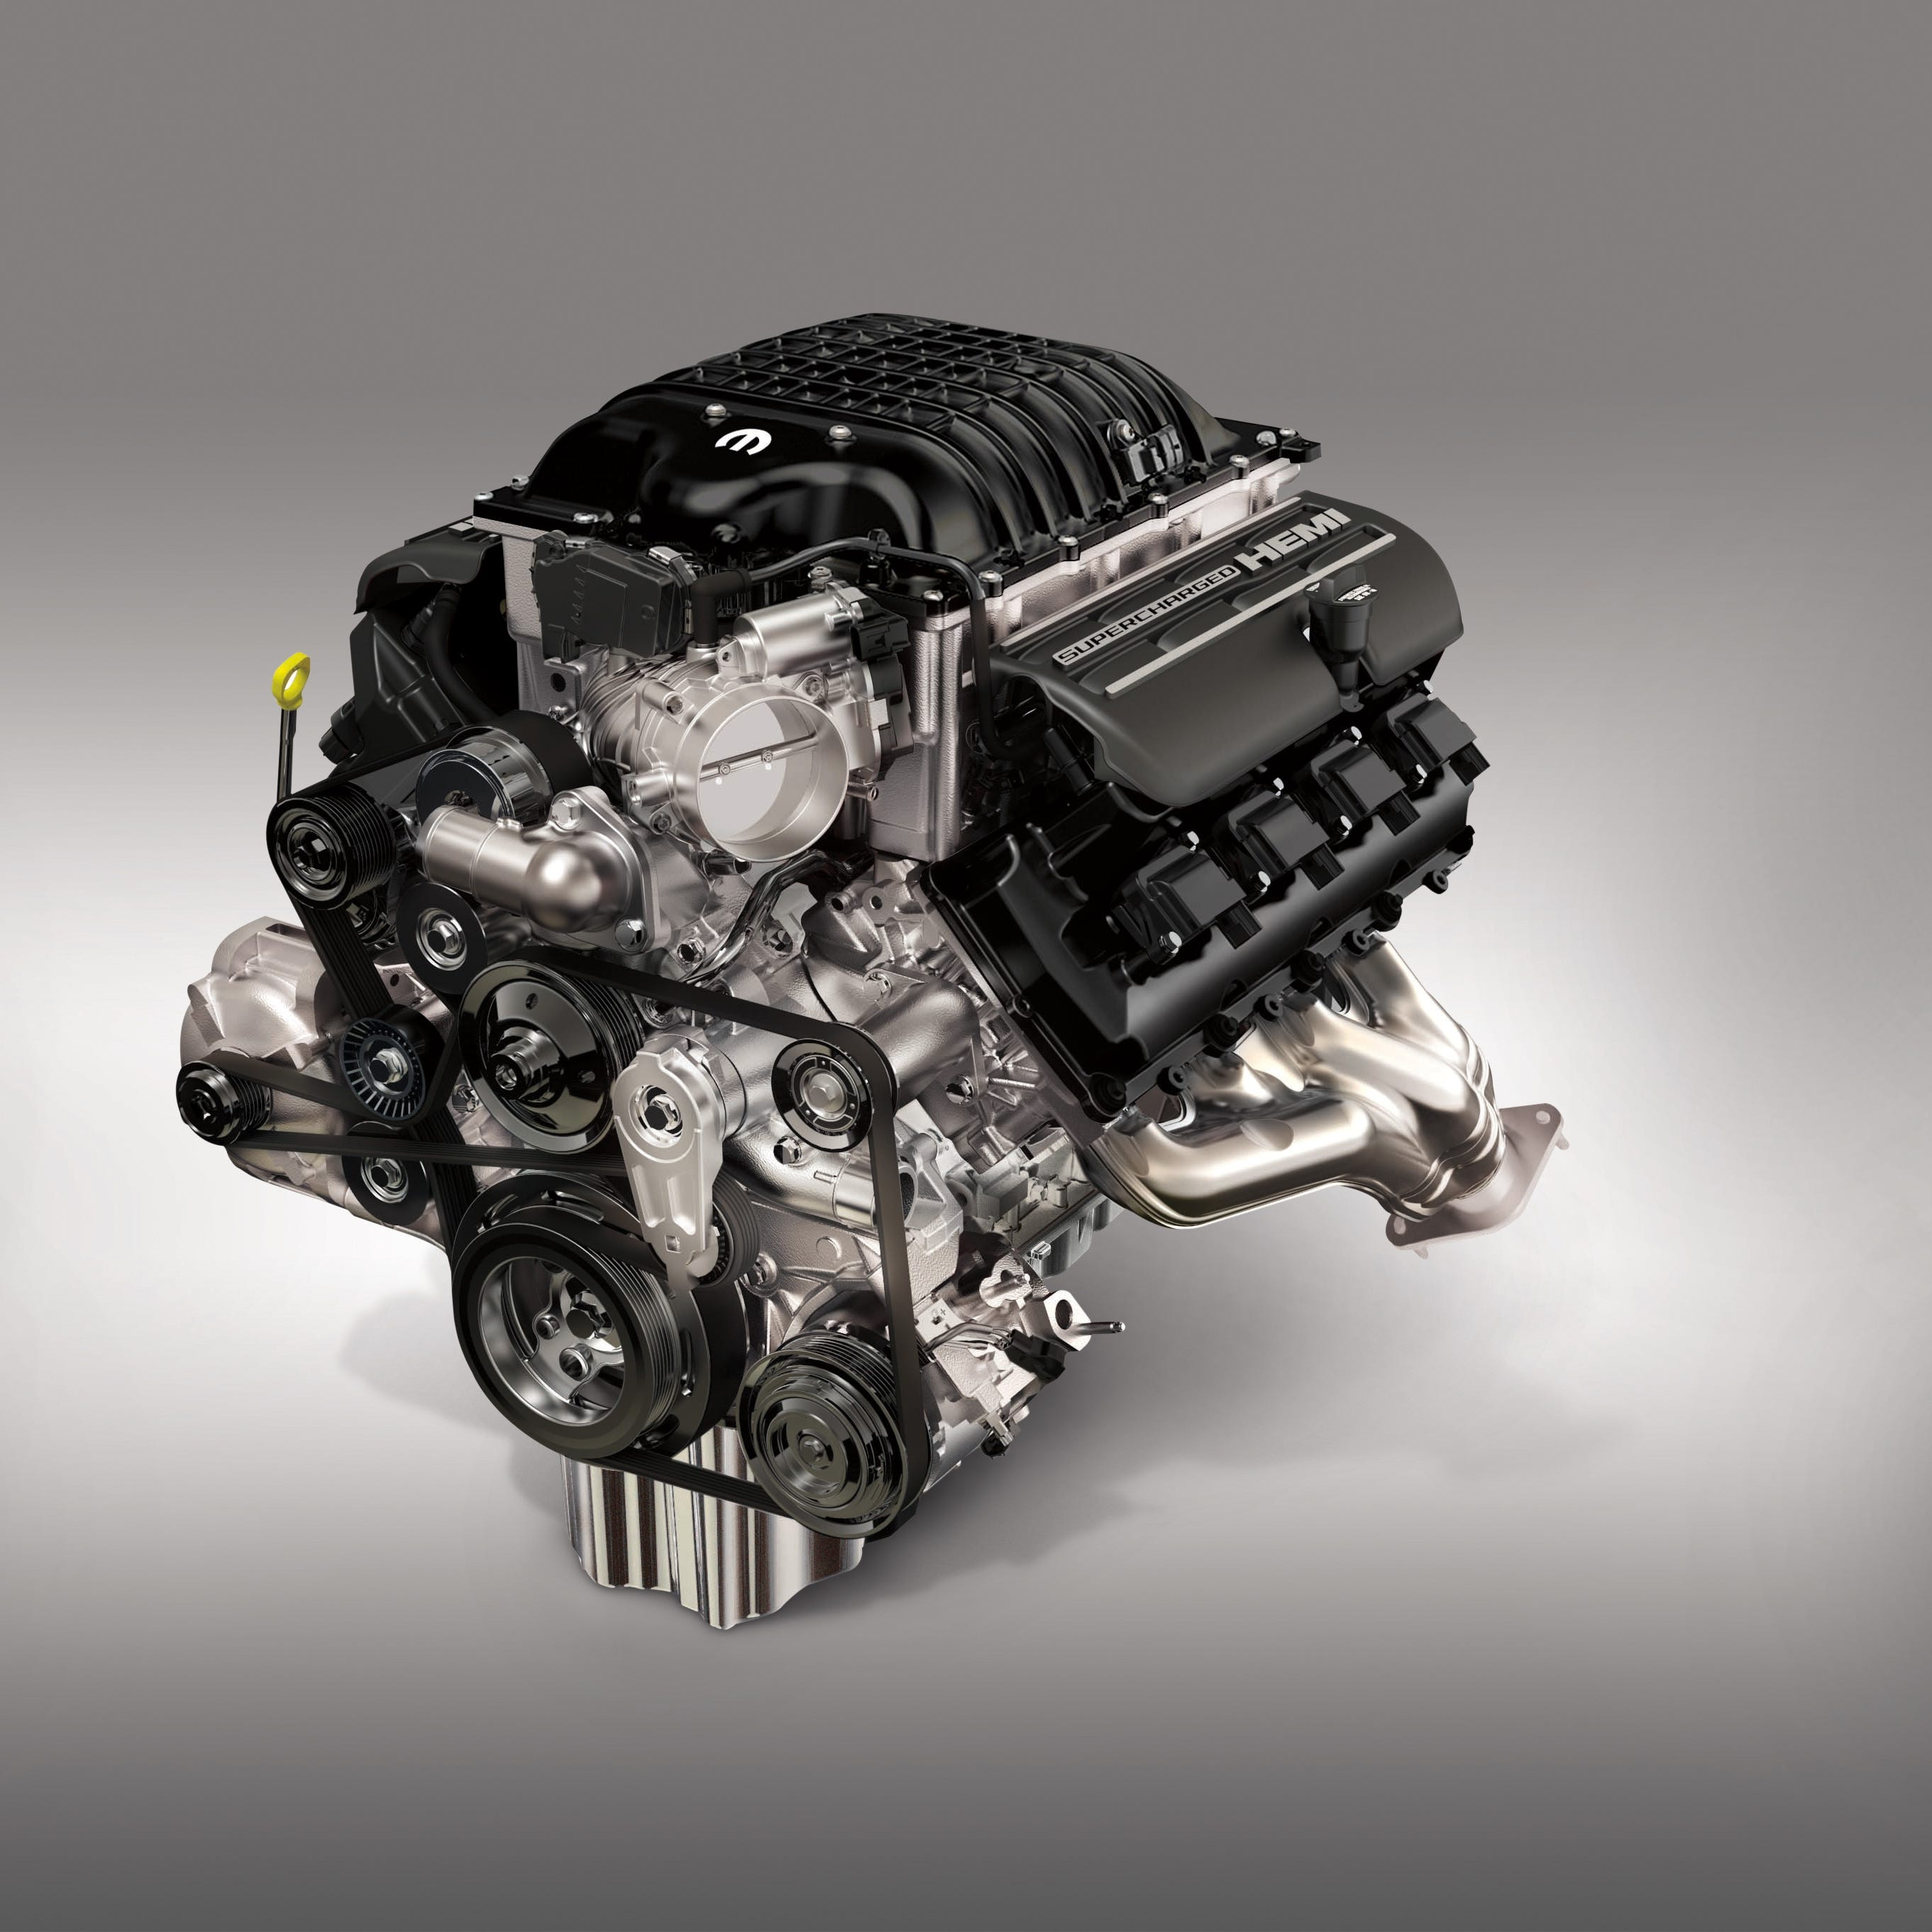 Mopar will celebrate Hemi Day with 1,000-horsepower 'Hellephant' engine